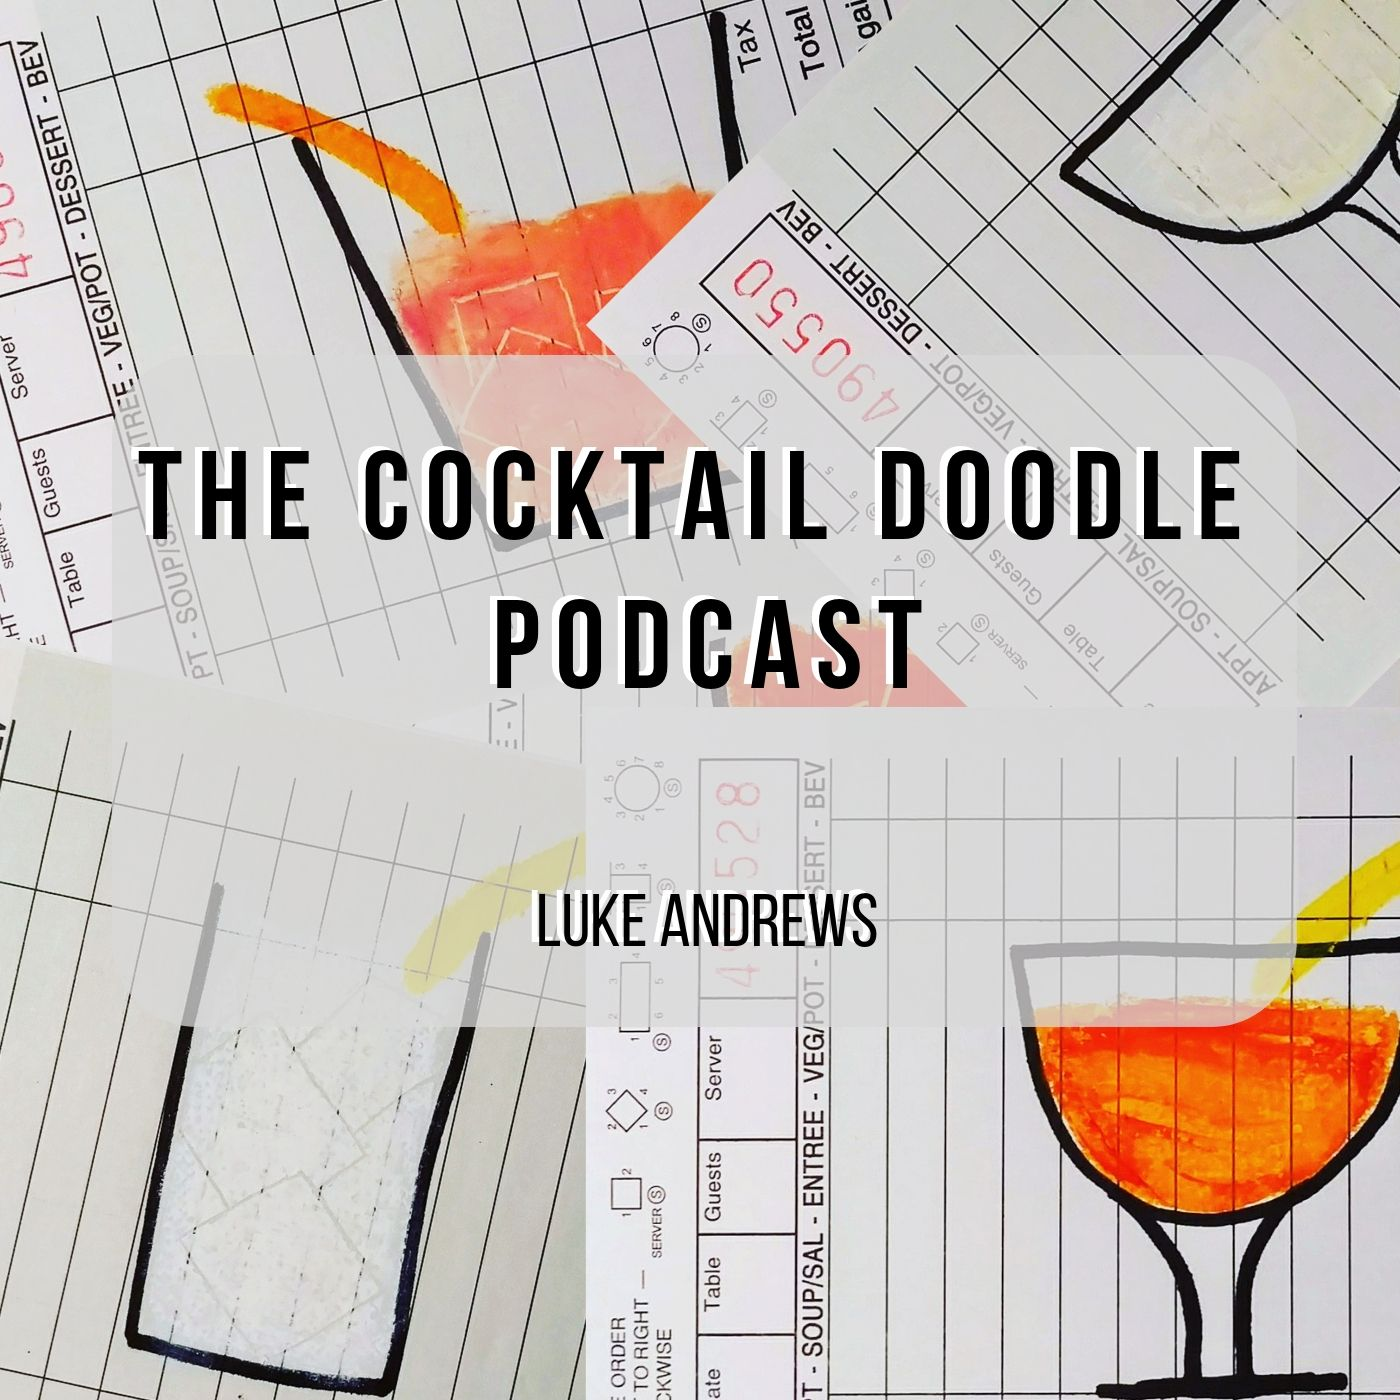 The Cocktail Doodle Podcast